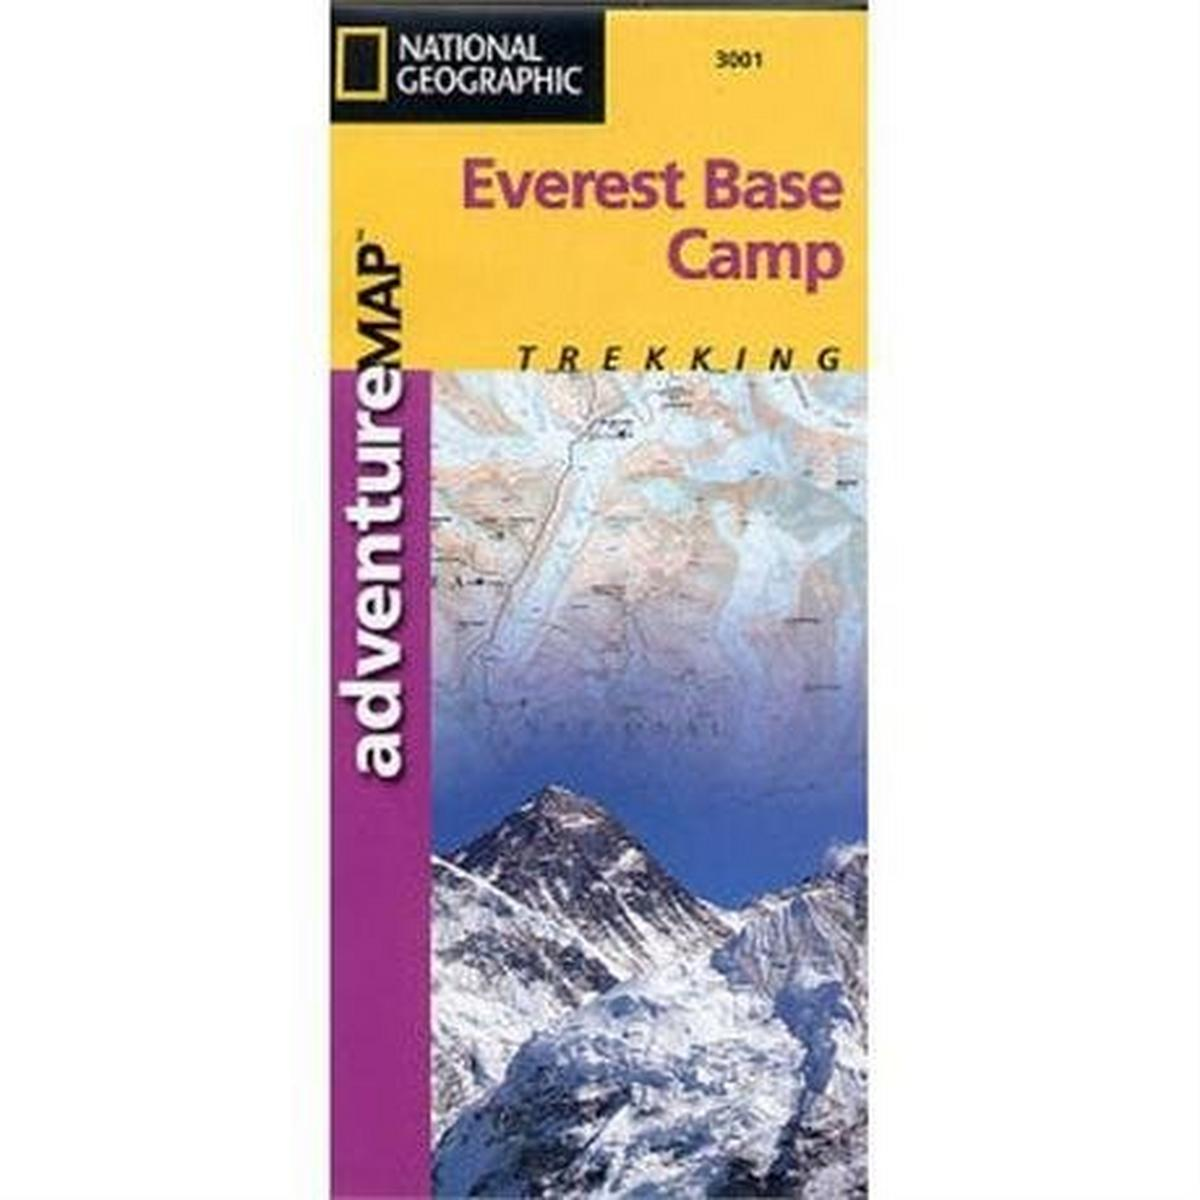 Miscellaneous Nepal Map: National Geographic Adventure Map: Everest Base Camp 1:50,000